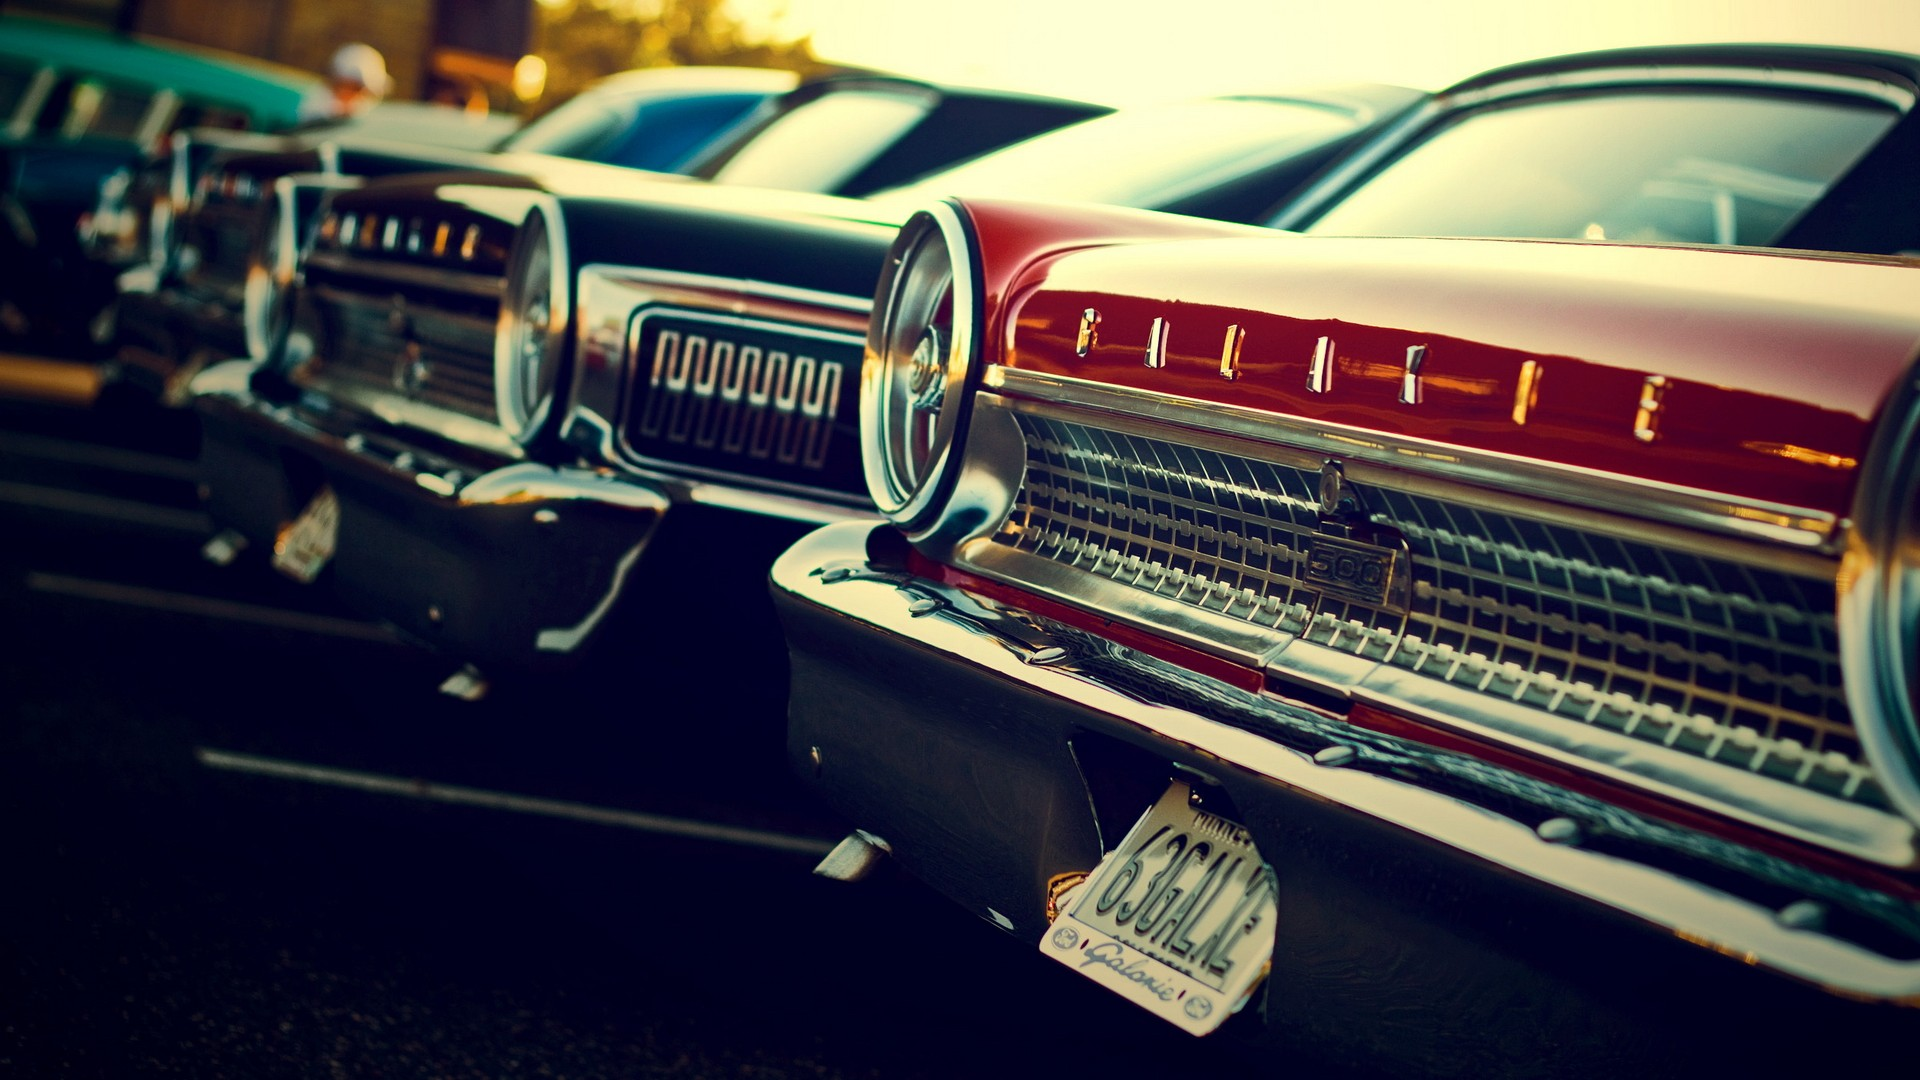 classic cars wallpaper 1920x1080 Wallpapers HD 1080p Desktop 1920x1080